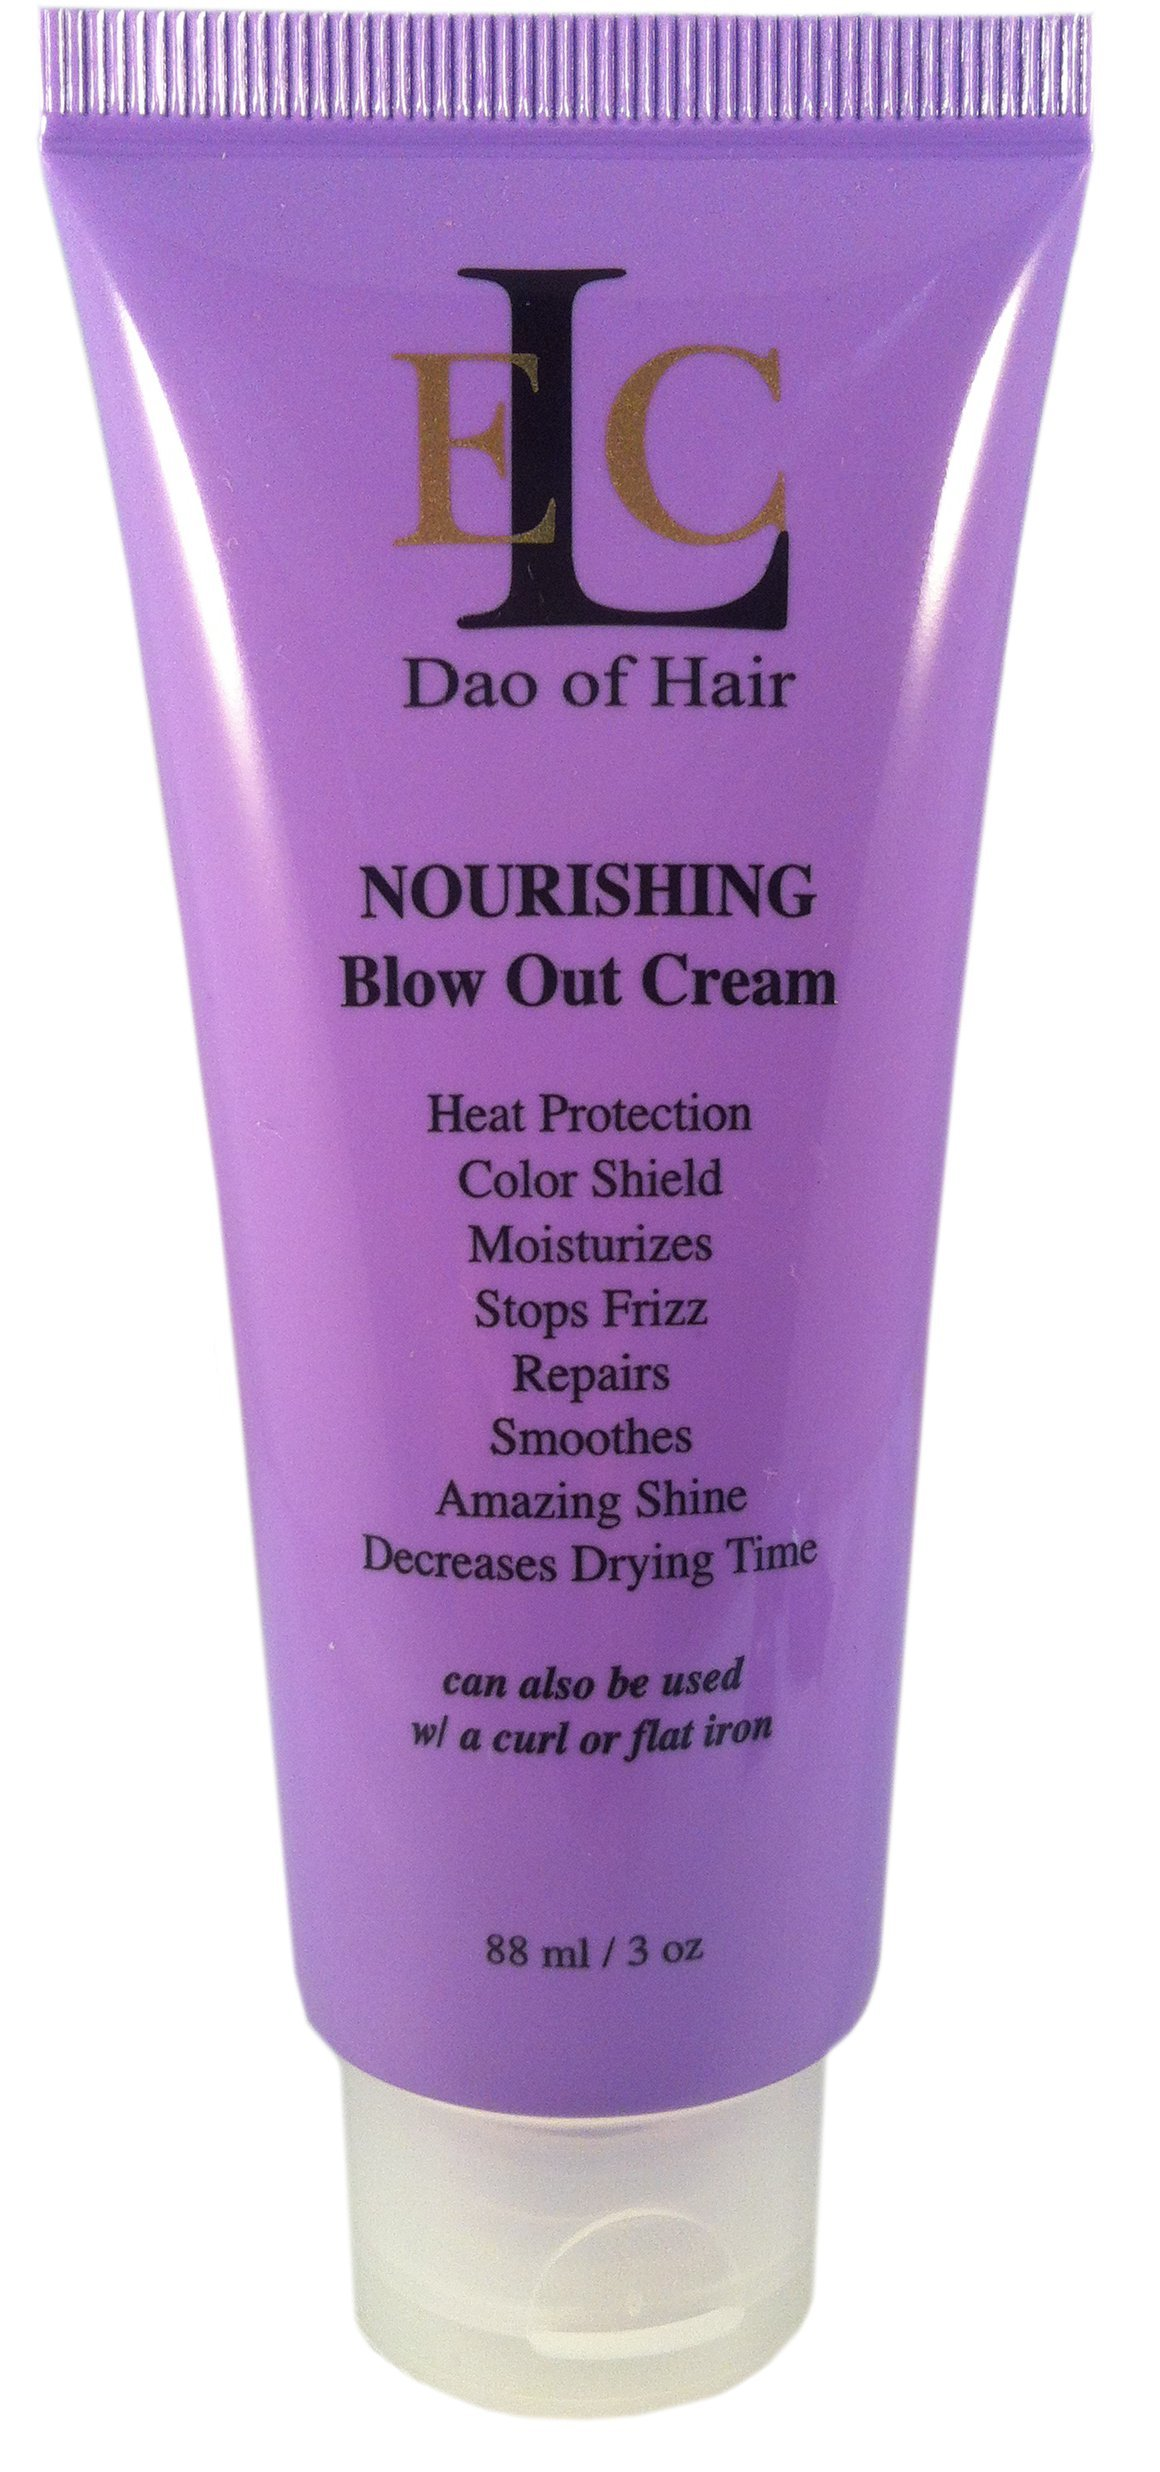 ELC RD Nourishing Blow Out Cream; Smooths, Blocks Humidity & Frizz. Heat & Color Protection. Moisturizes, Strengthens. Prevent Split Ends, Brilliant Shine. Reduces Drying time. Med to Coarse Hair.